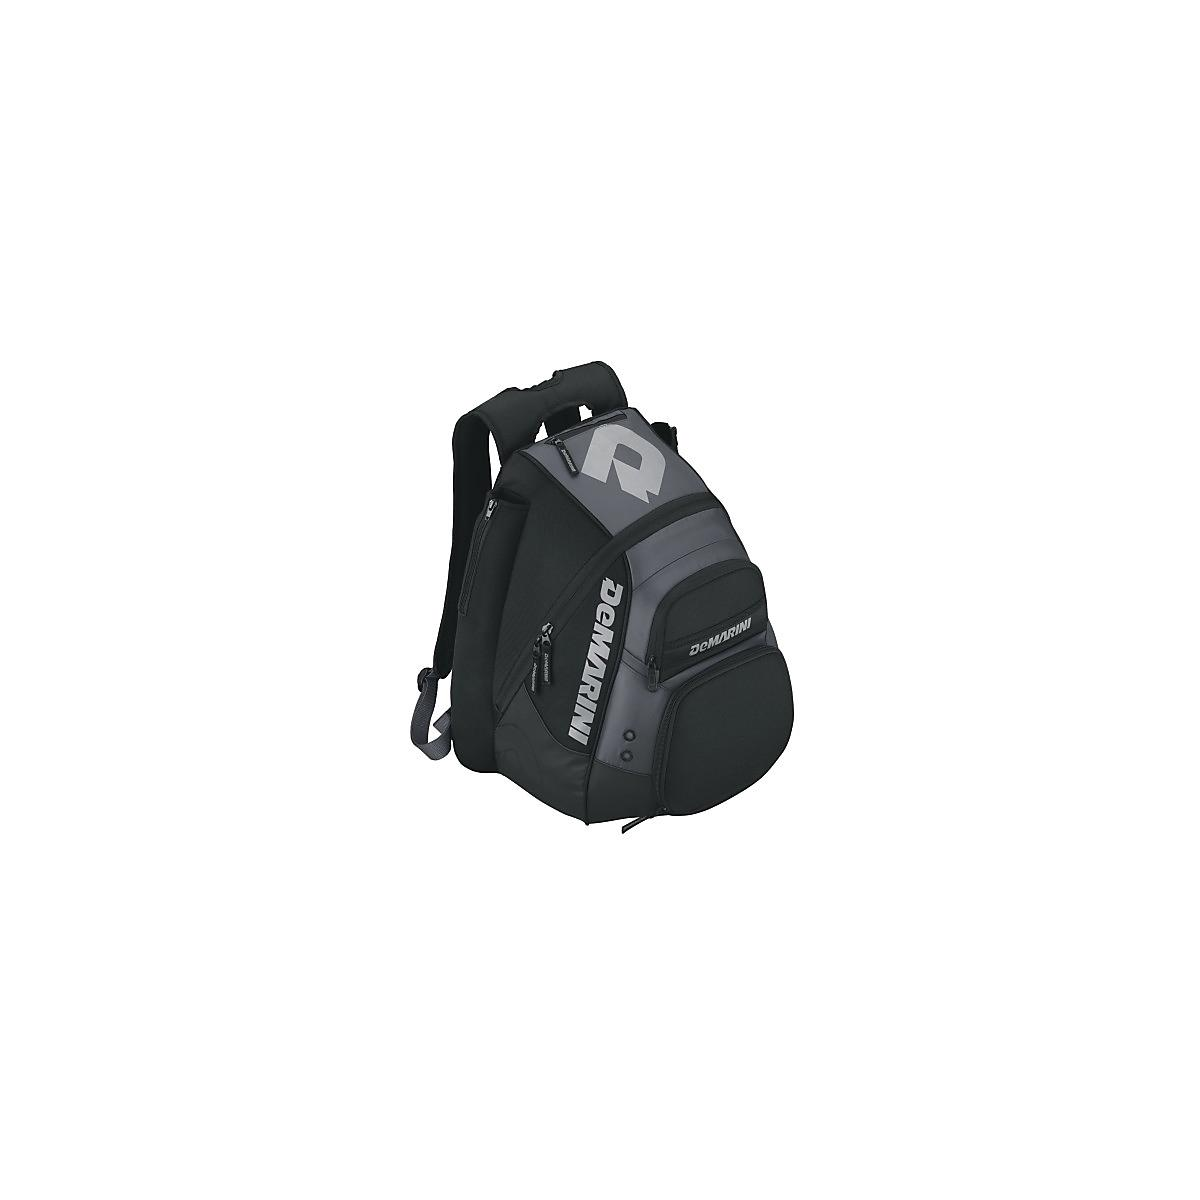 Wilson�DeMarini Voodoo Backpack